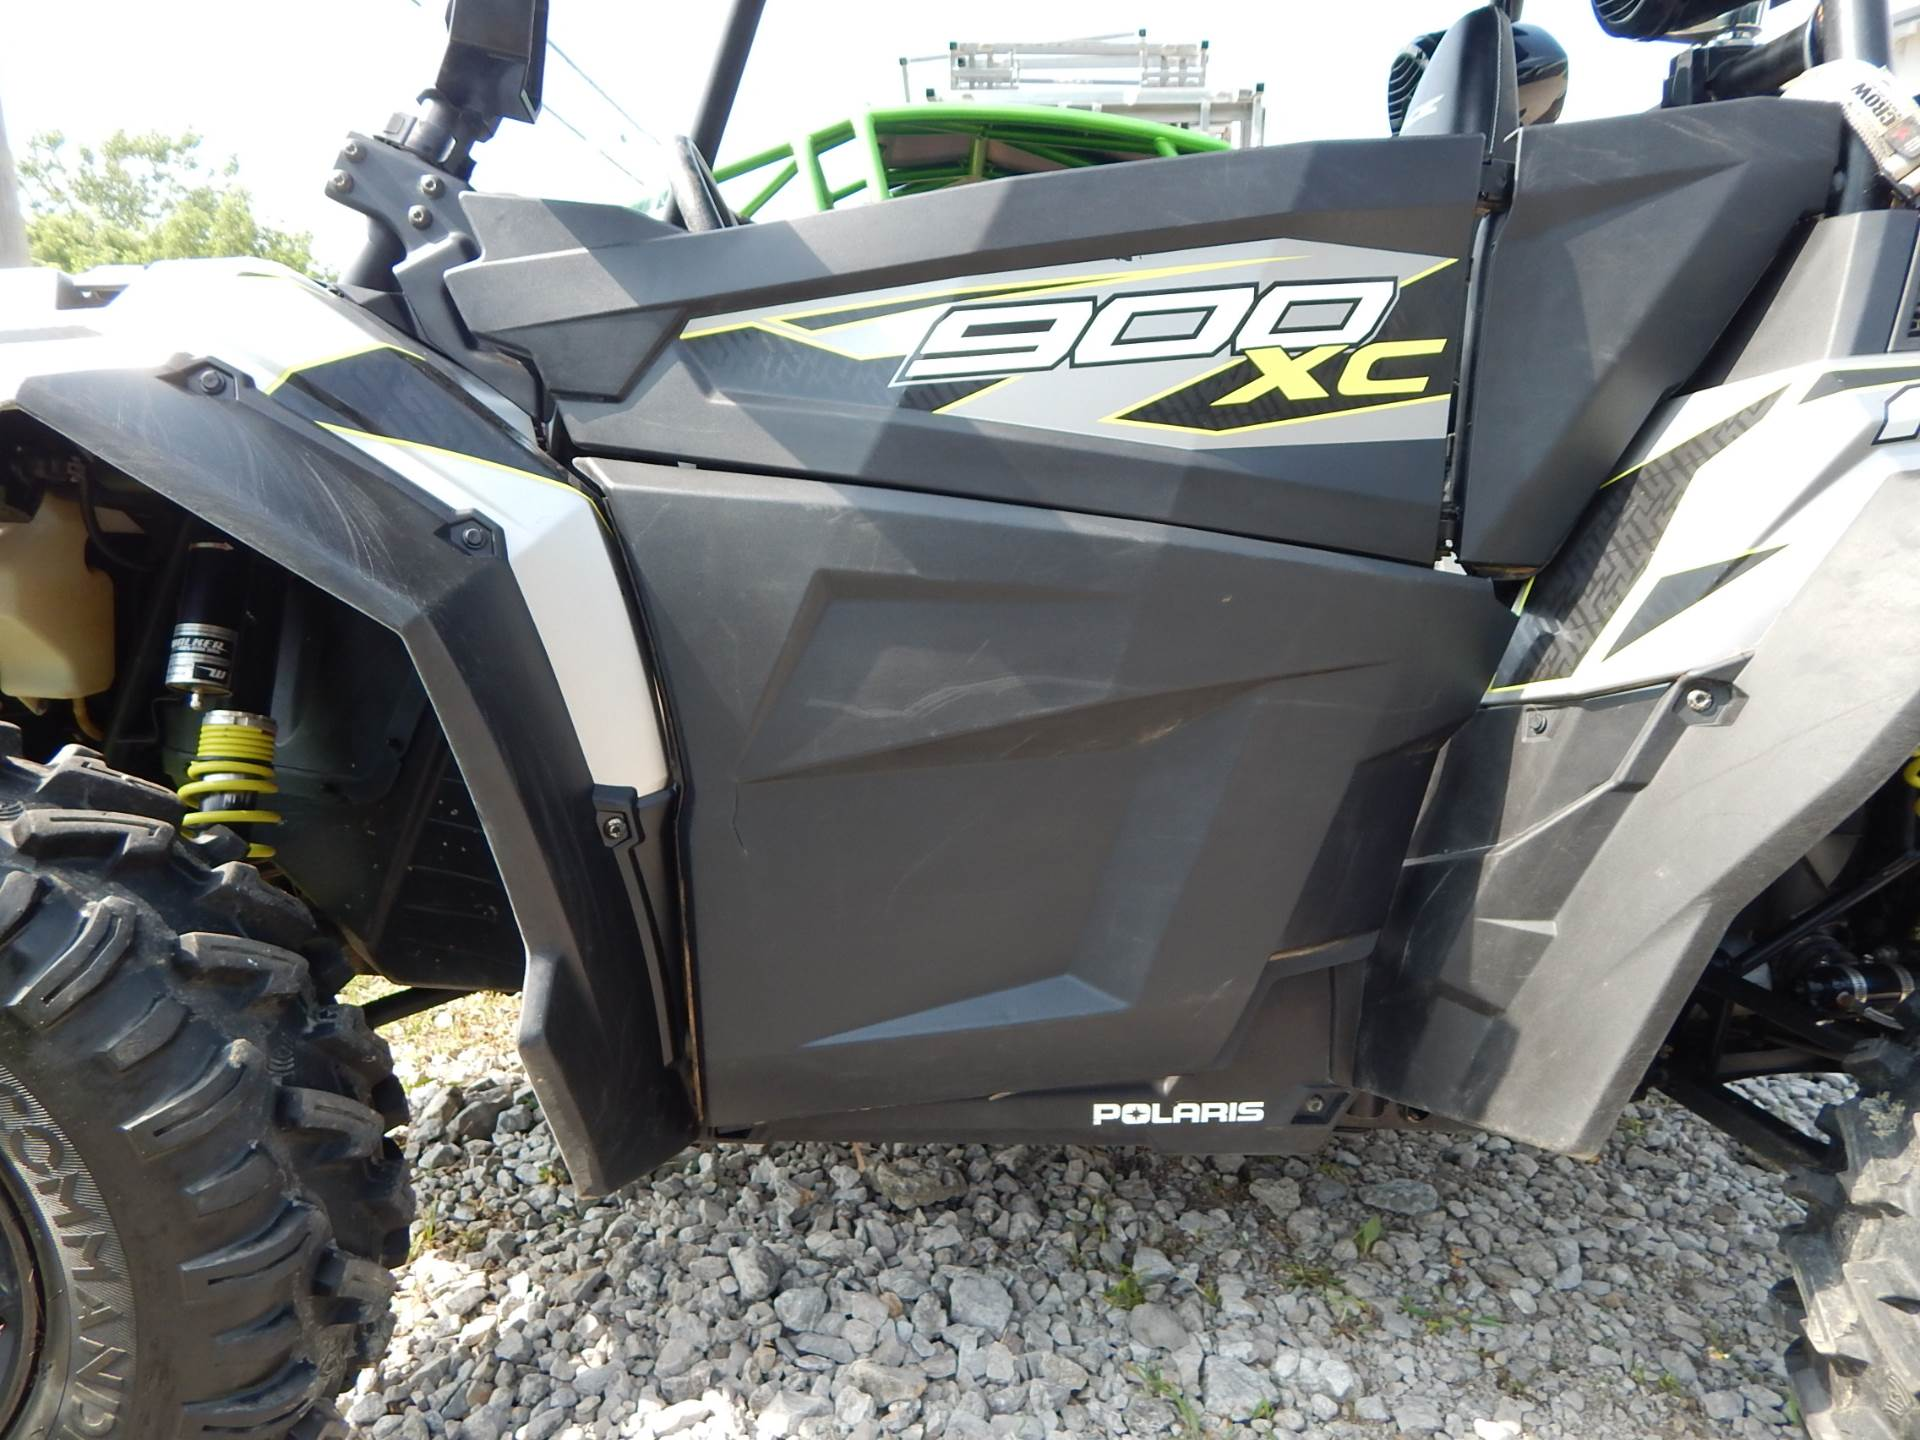 2017 Polaris Ace 900 XC in Carroll, Ohio - Photo 2